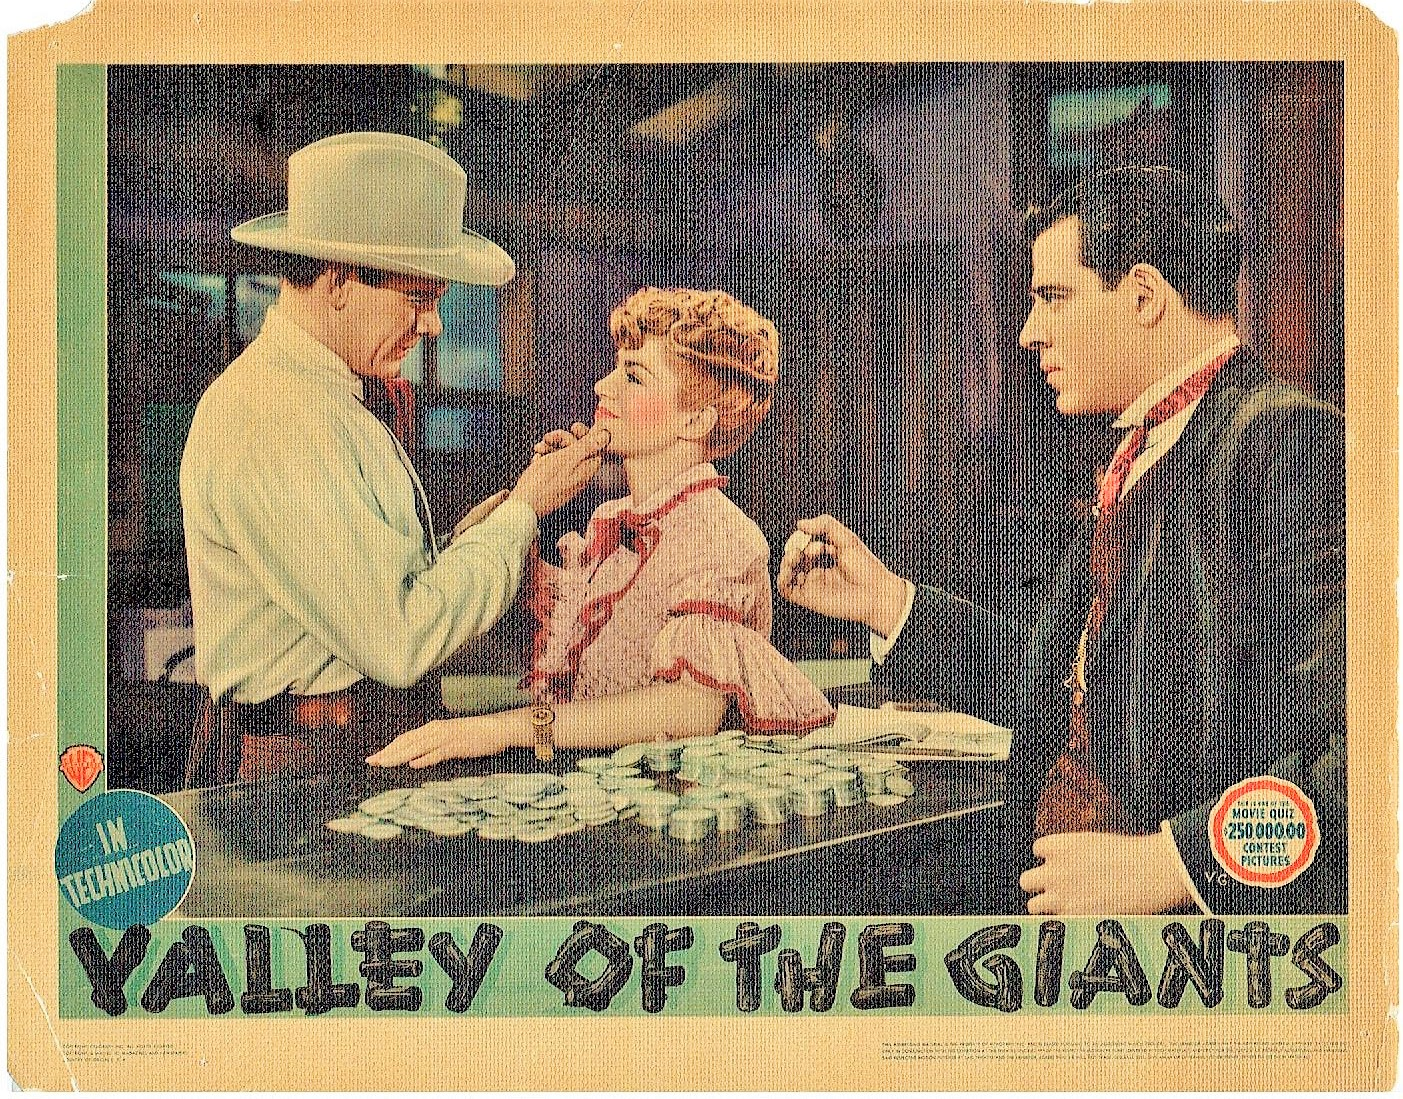 Charles Bickford, Wayne Morris, and Claire Trevor in Valley of the Giants (1938)